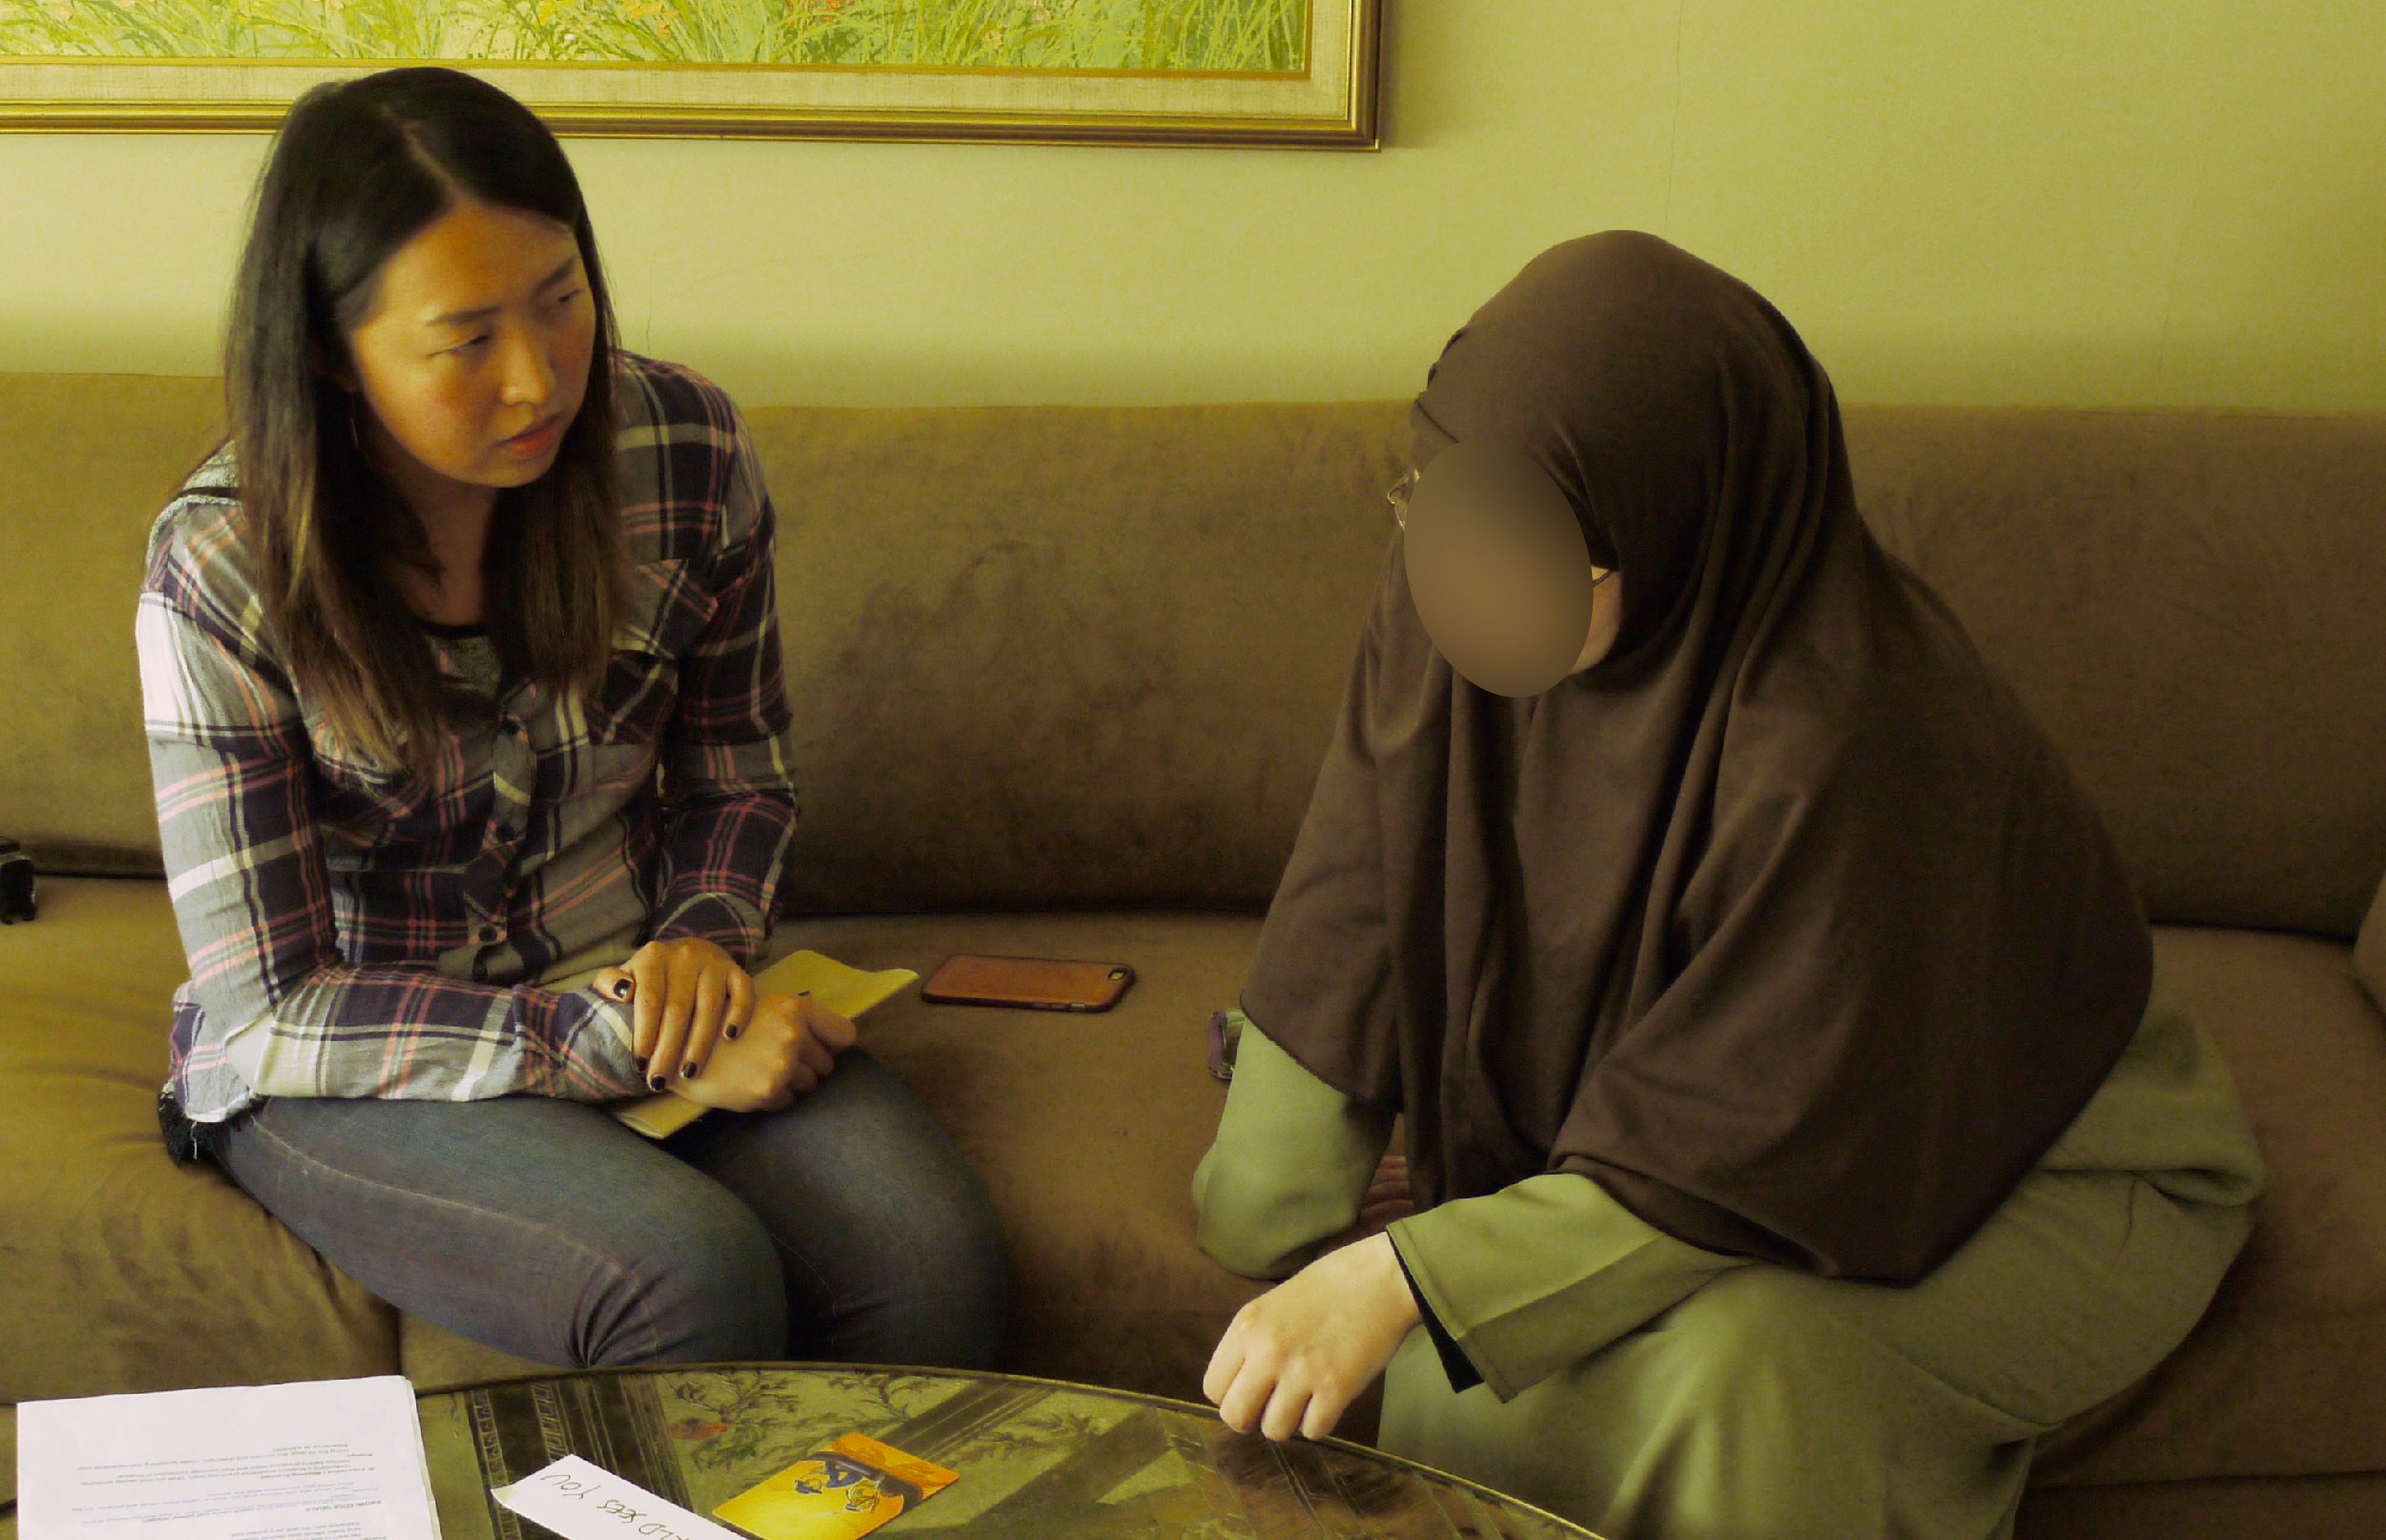 To understand Muslim in the US, I Interviewed a Muslim woman in Pasadena and used generative research methodologies   .